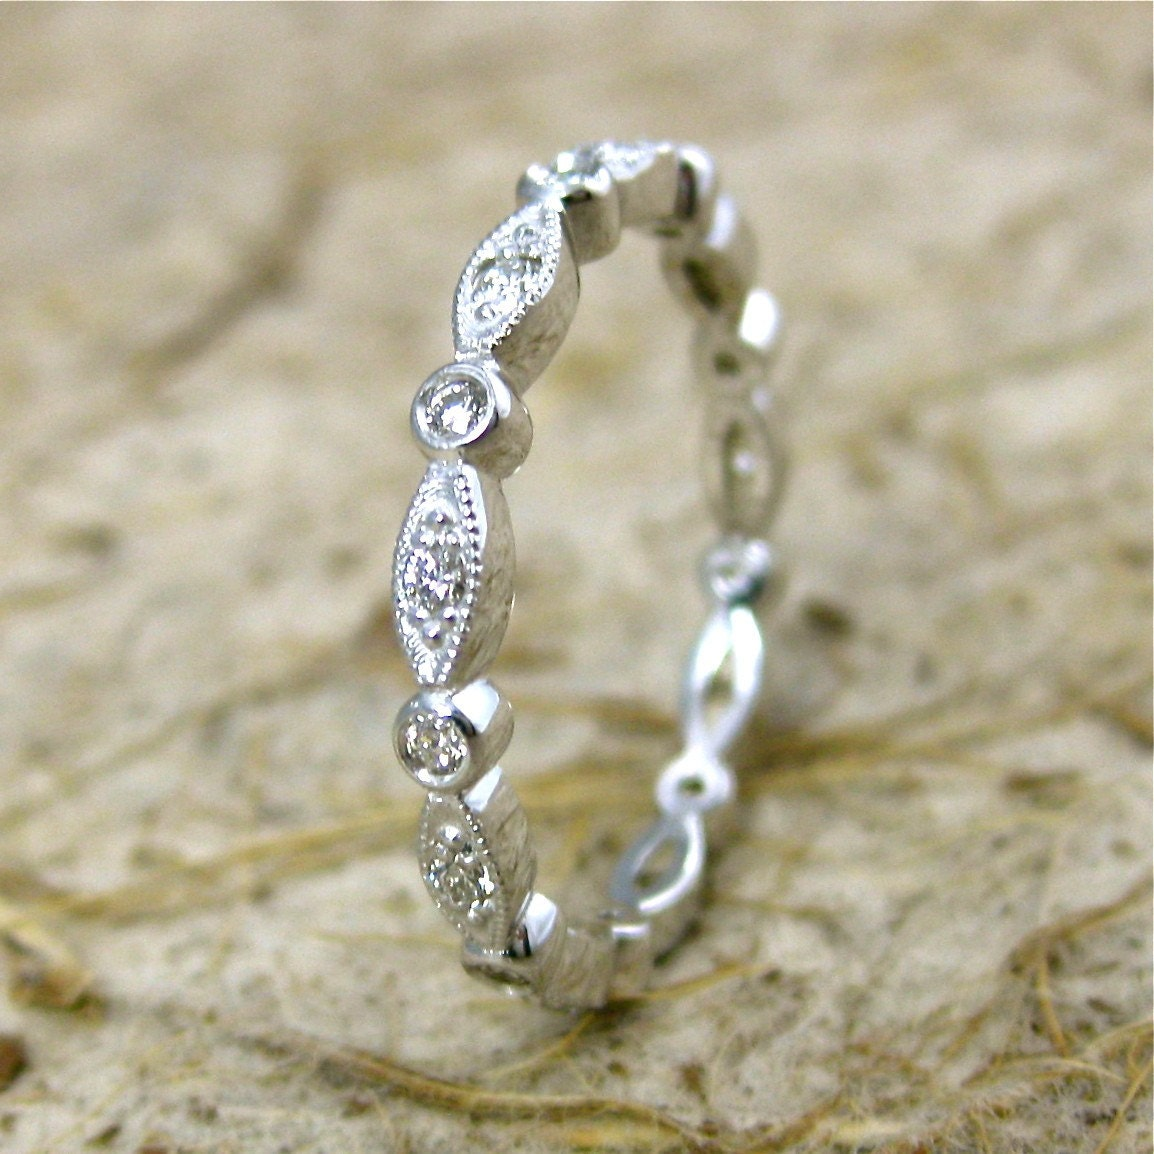 Vintage Style Diamond Wedding Ring With Shield Round Bezels